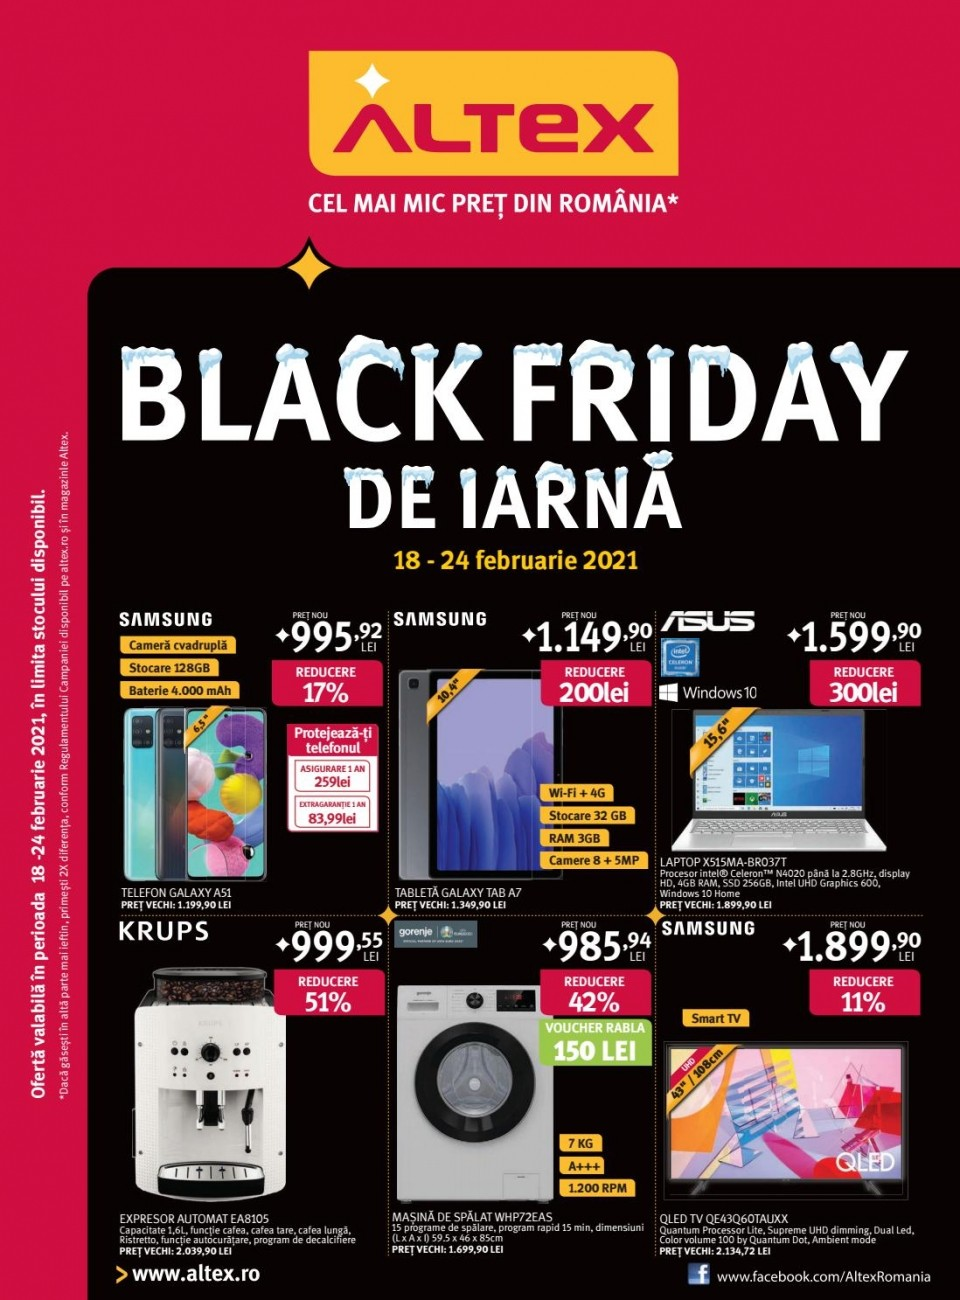 Catalog ALTEX Black Friday - 18 Februarie 2020 - 24 Februarie 2021